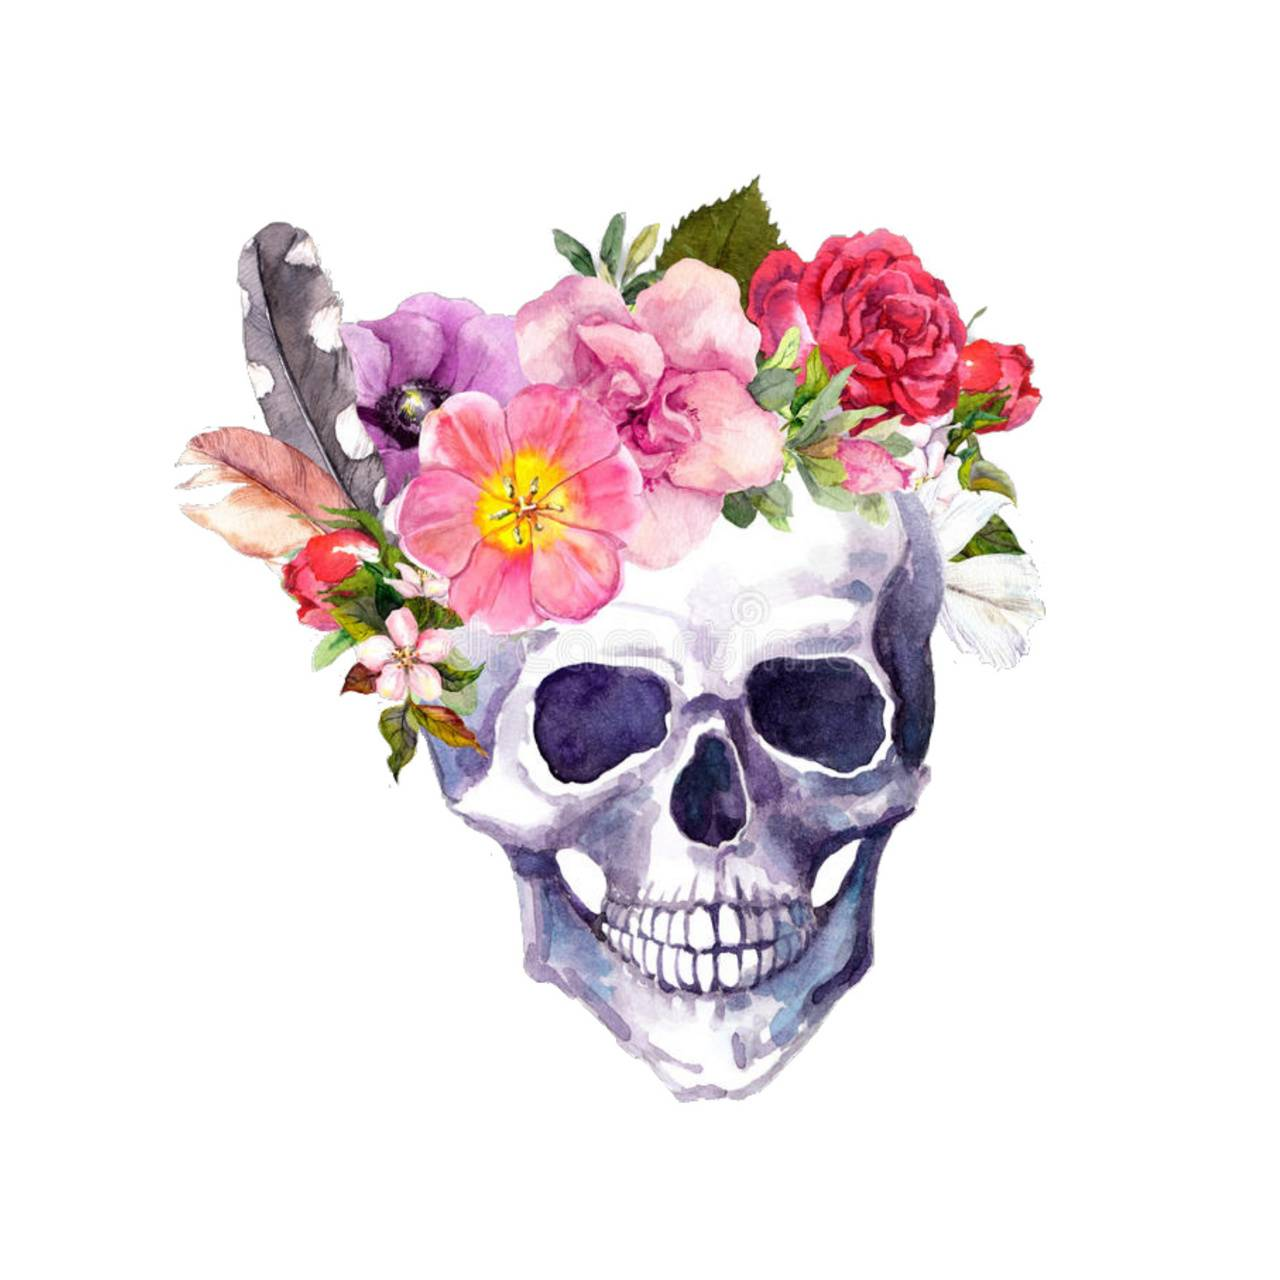 Flower Skull Wallpaper By Minniemouse 67 Free On Zedge